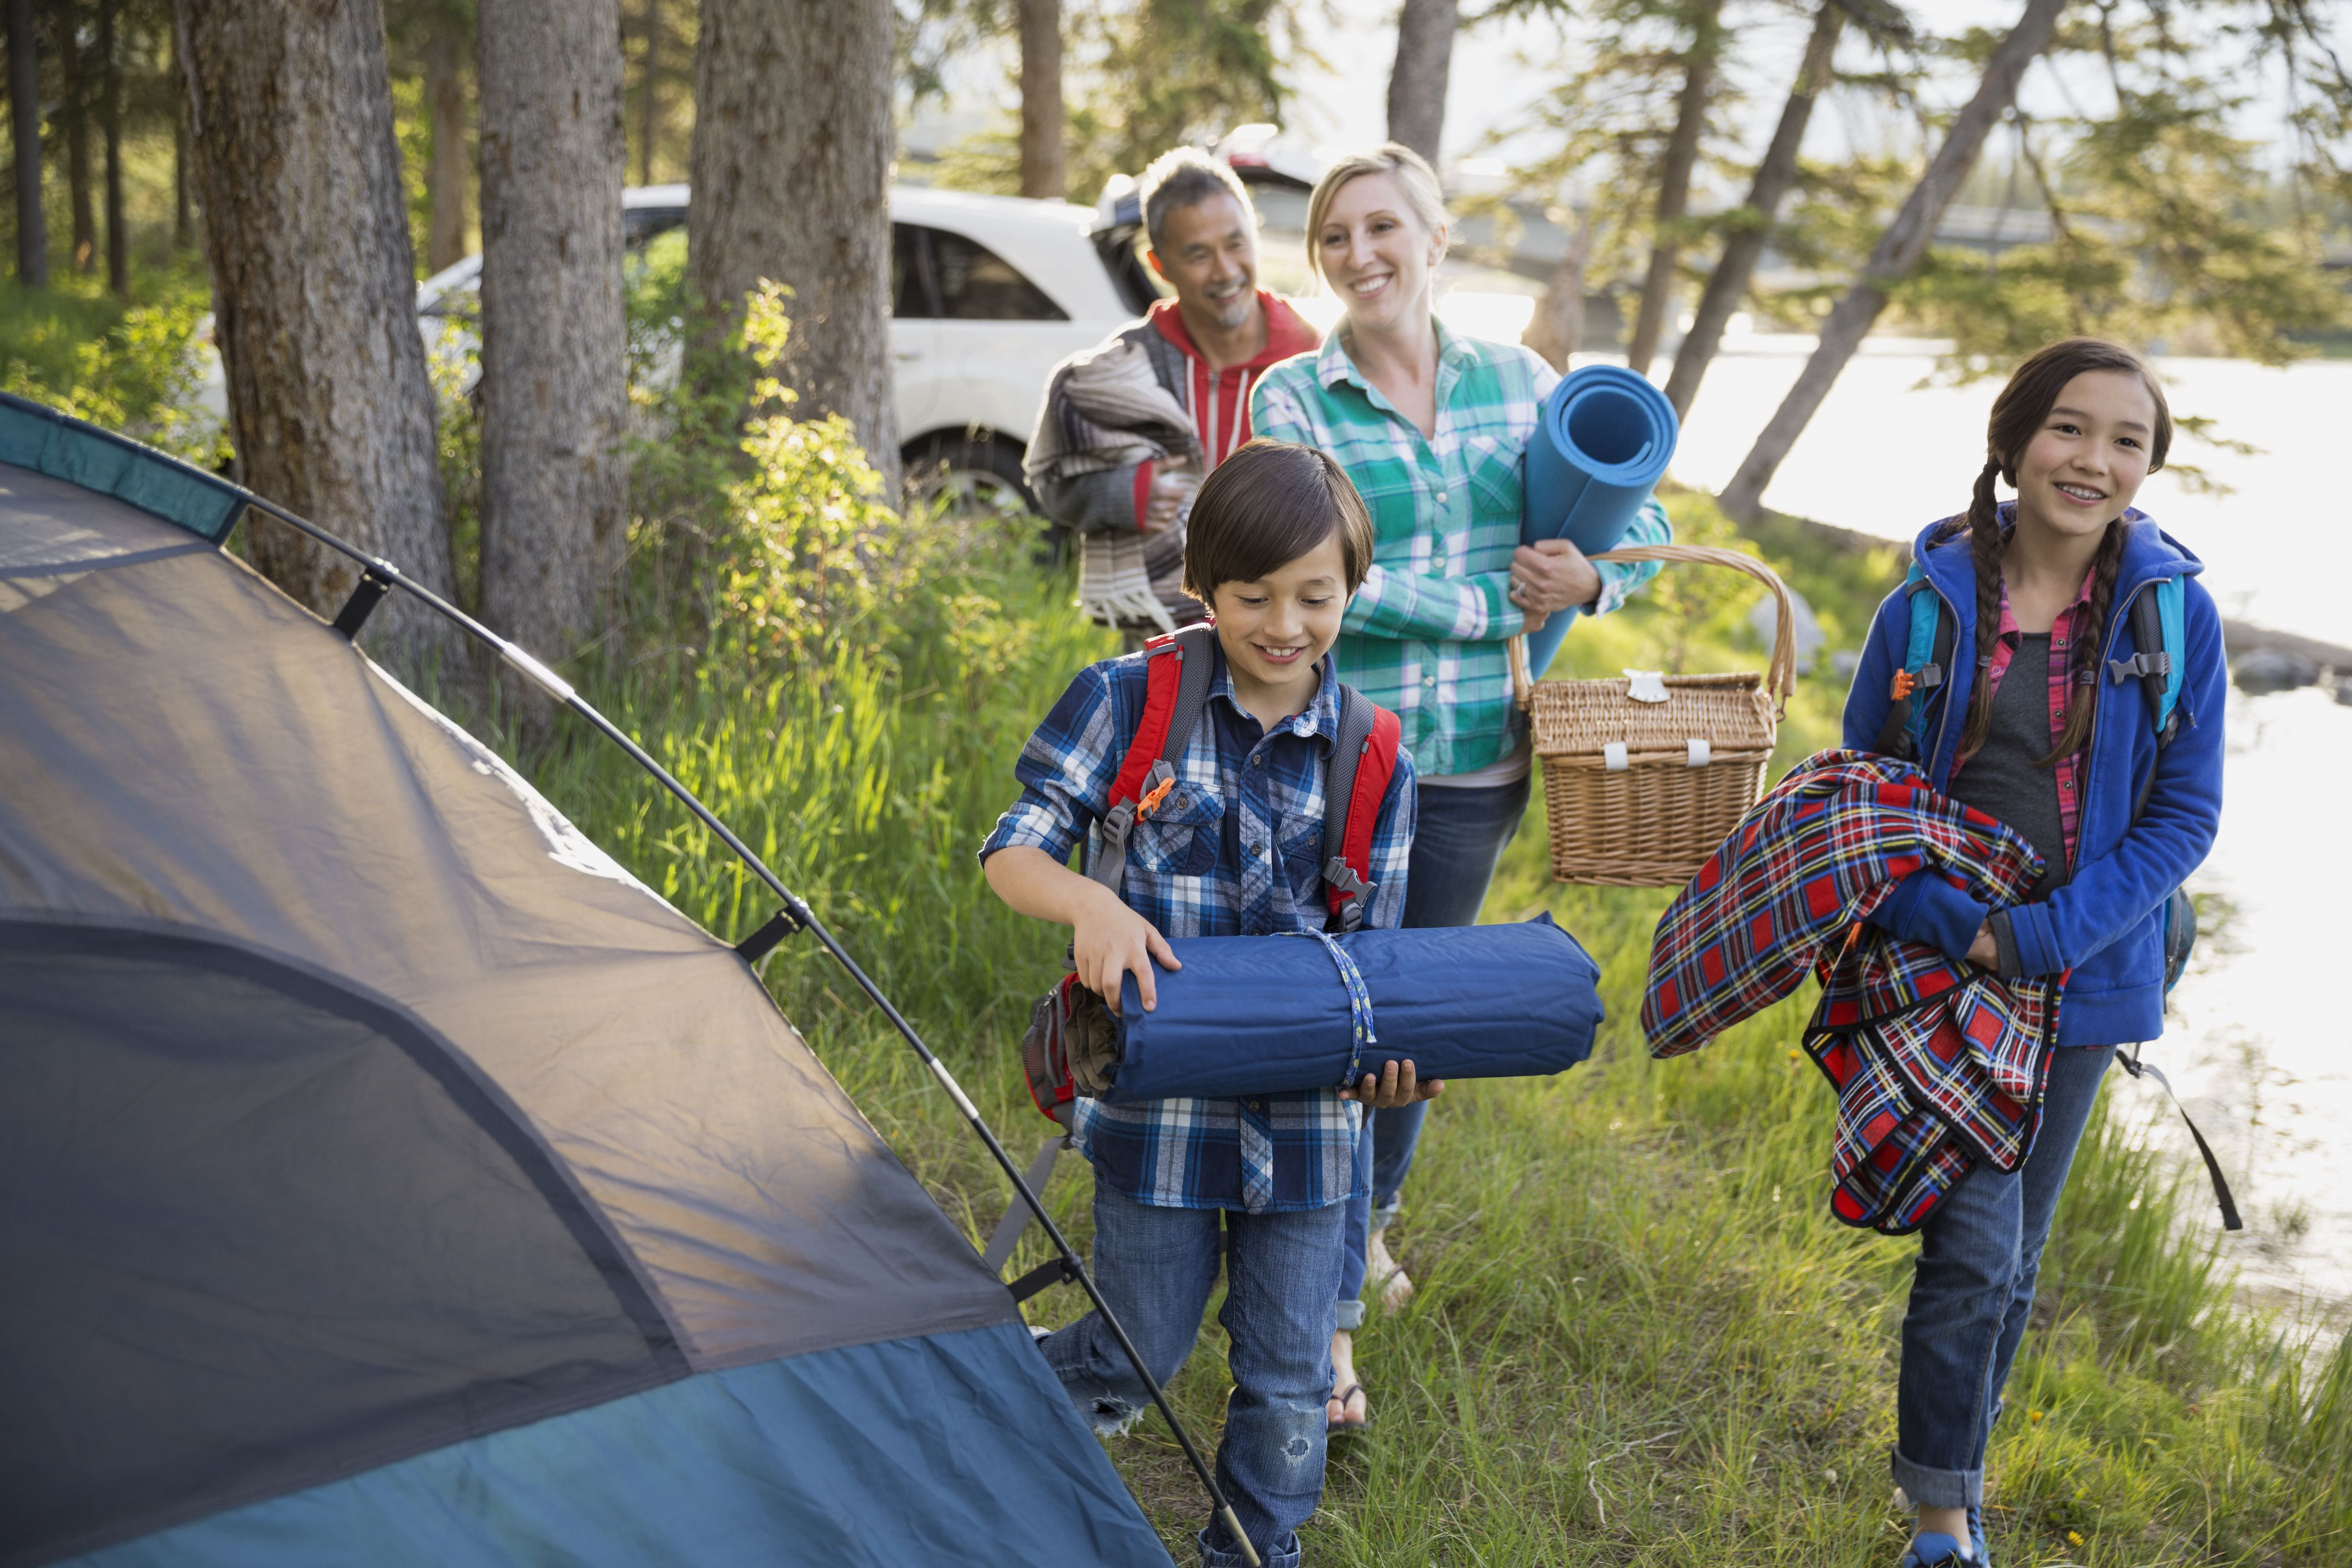 camping with family Our comprehensive checklist for car campers and families includes recommendations on equipment, clothing and other camp essentials.